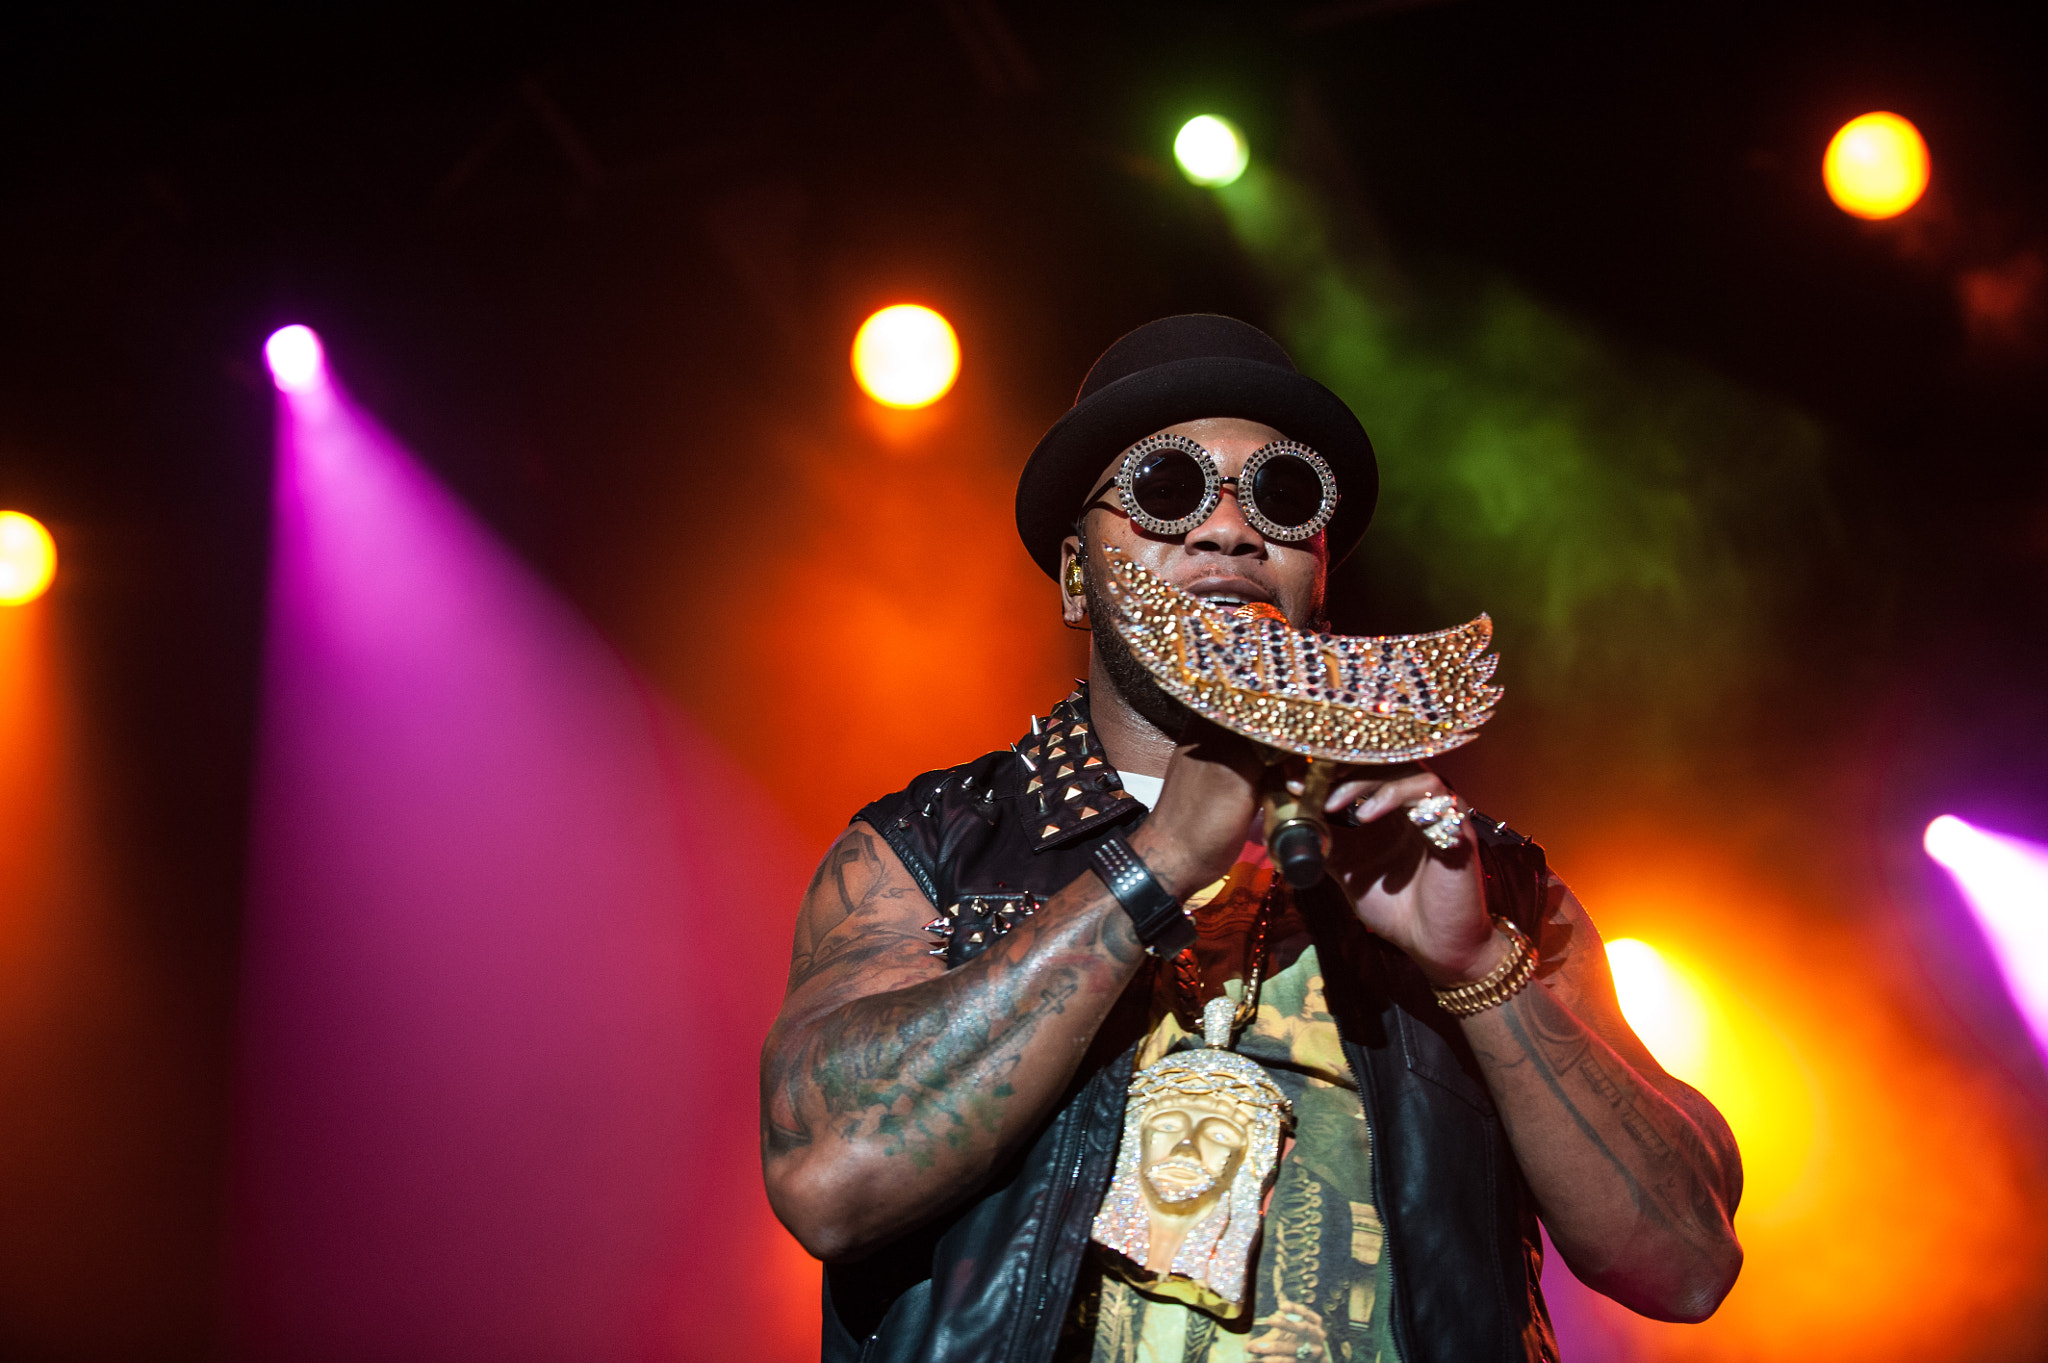 Photograph Flo Rida at the COTA Club by Dave Wilson on 500px